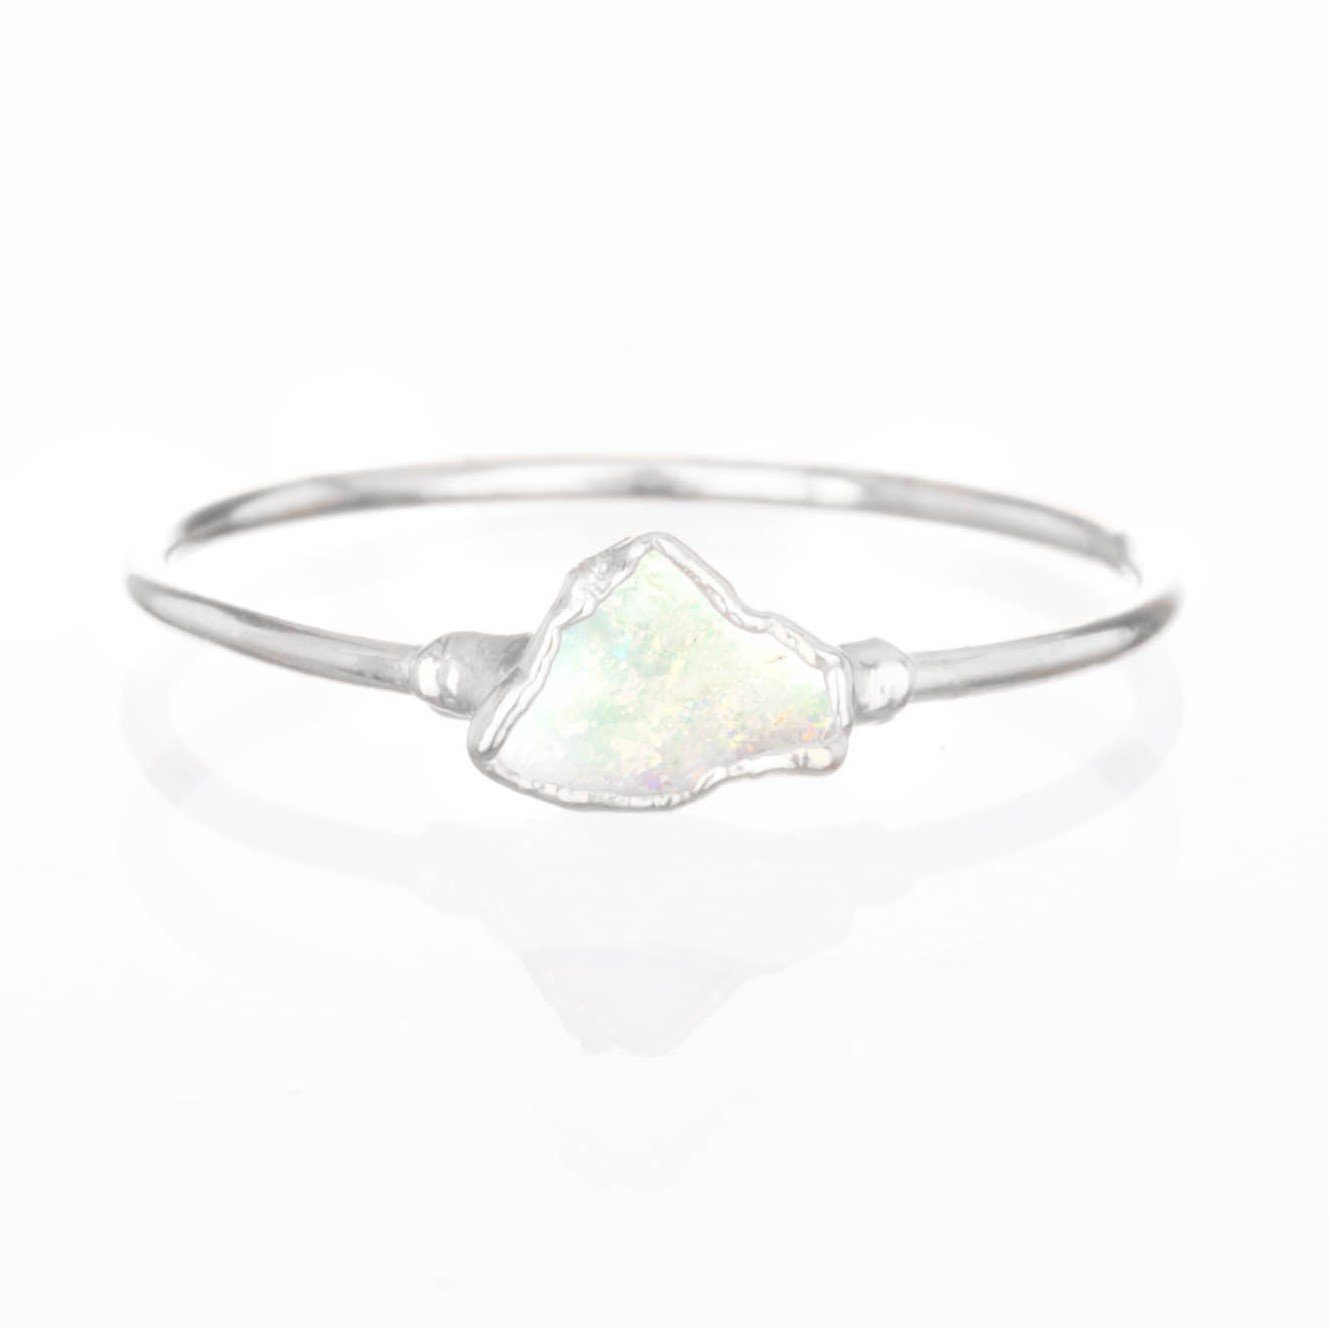 Mini Raw Opal Ring, Size 6, Sterling Silver, October Birthstone Stacking Ring